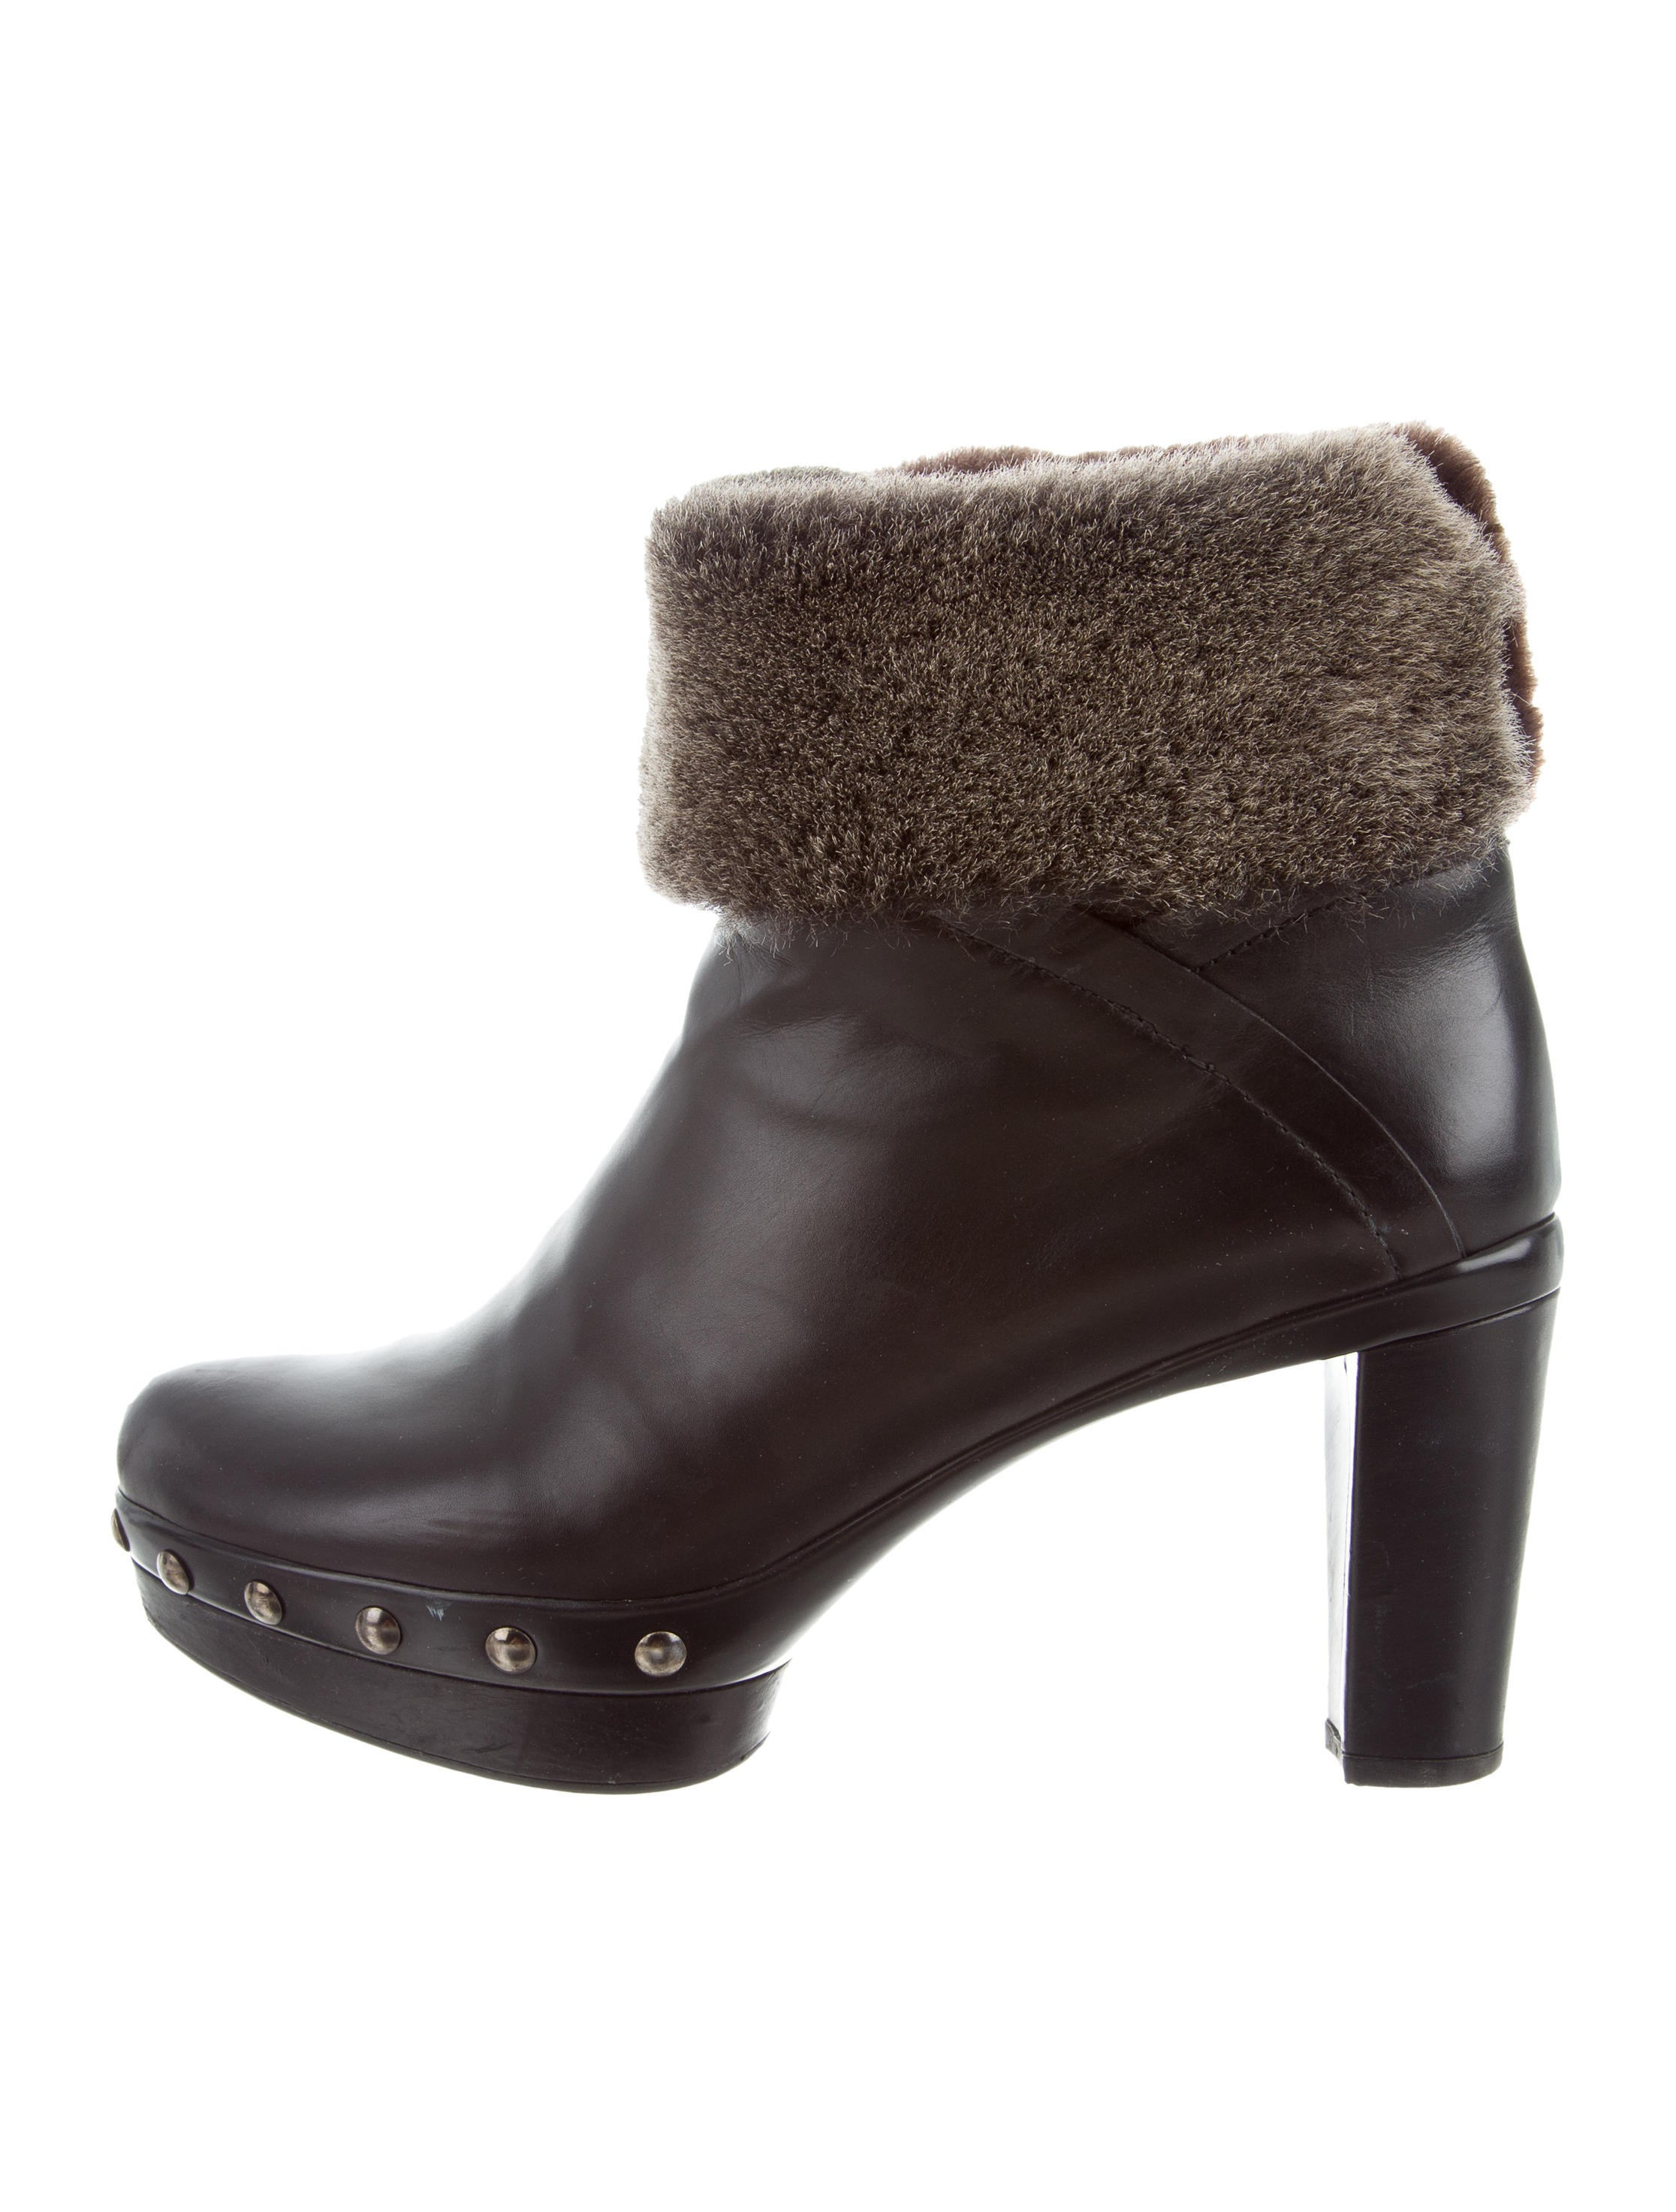 Stuart Weitzman Leather Shearling-Lined Ankle Boots w/ Tags clearance brand new unisex rDlZ89